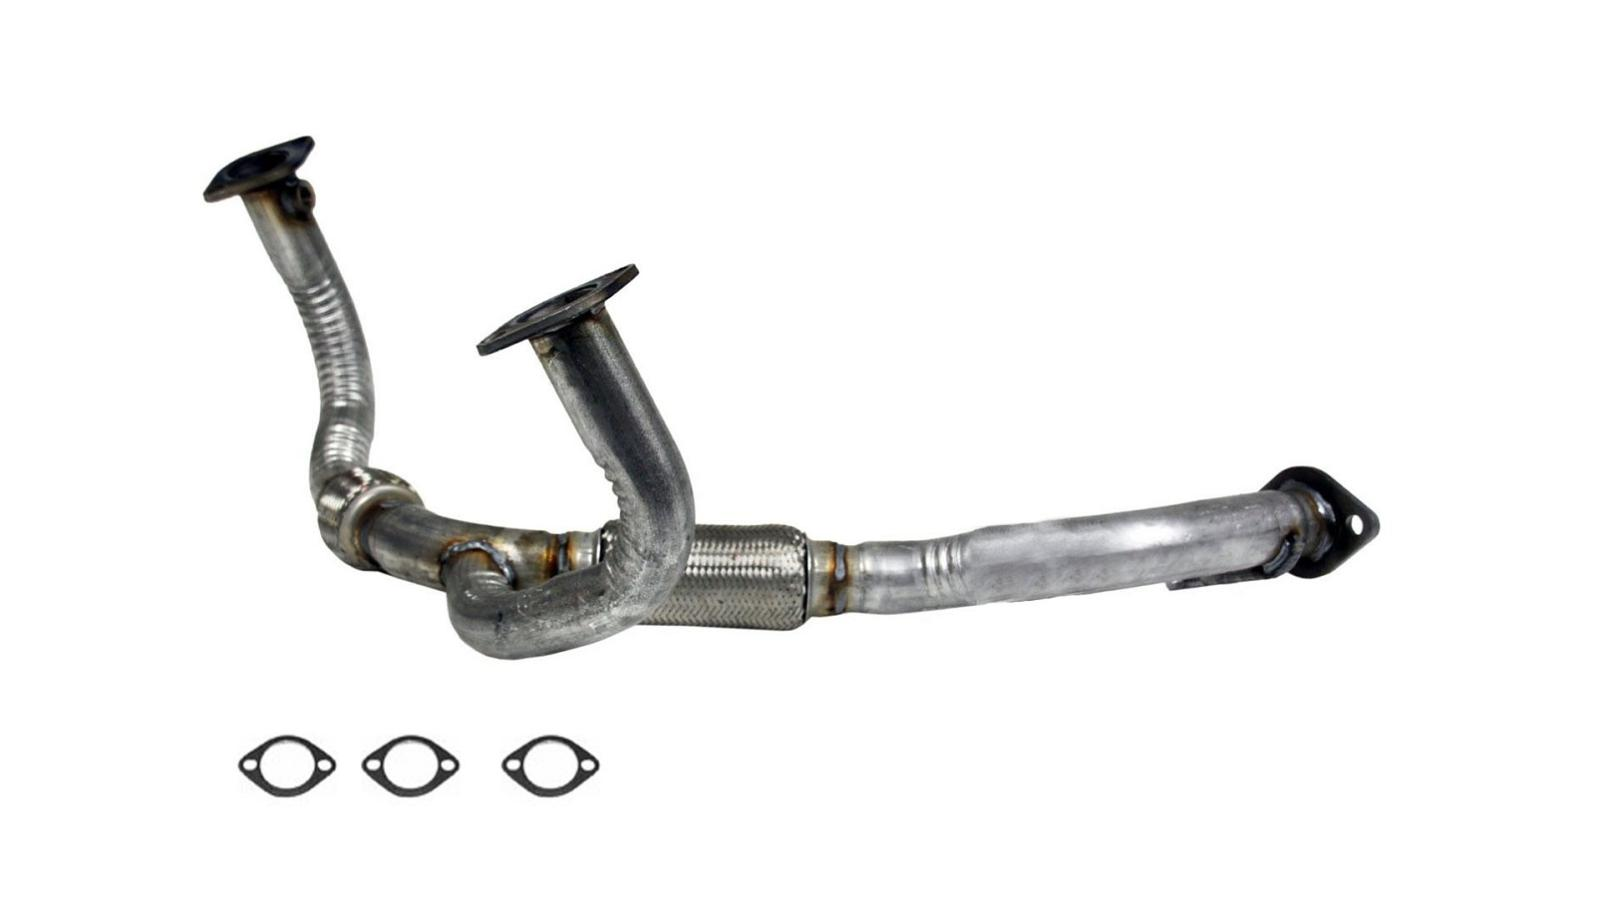 Kia Sorento Flex Pipe Repair Kit